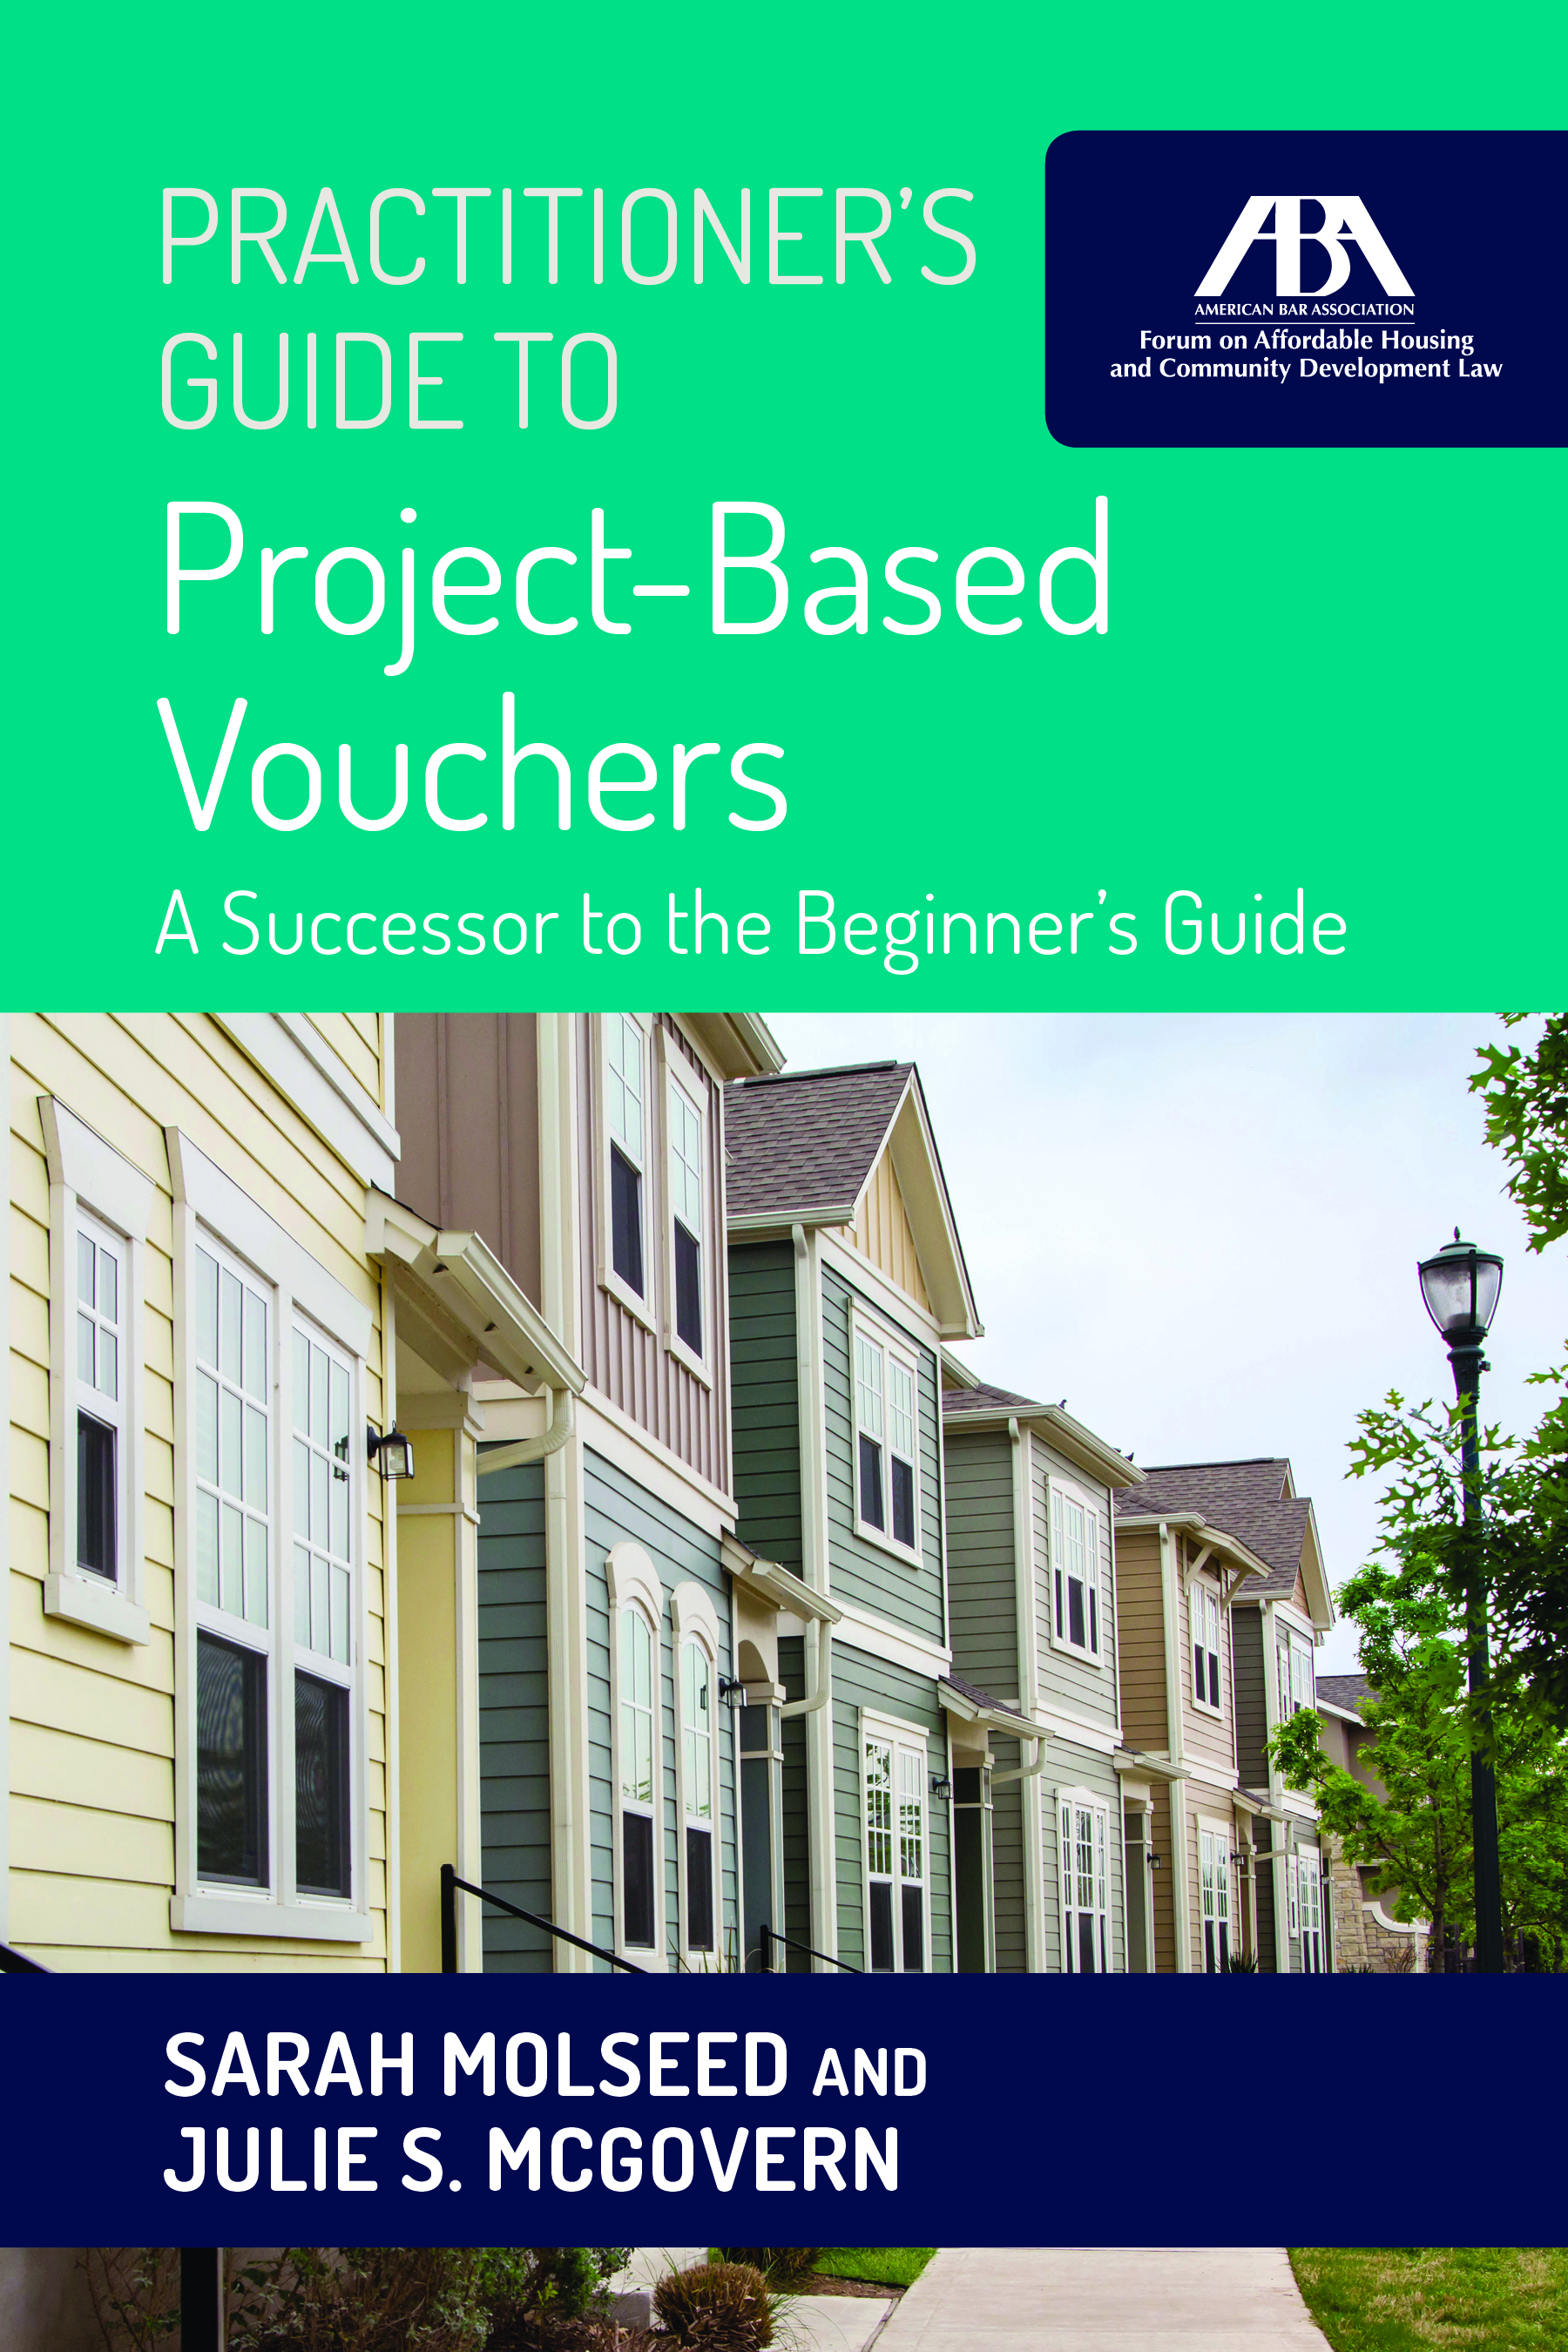 Practitioner's Guide to Project-Based Vouchers, Second Edition